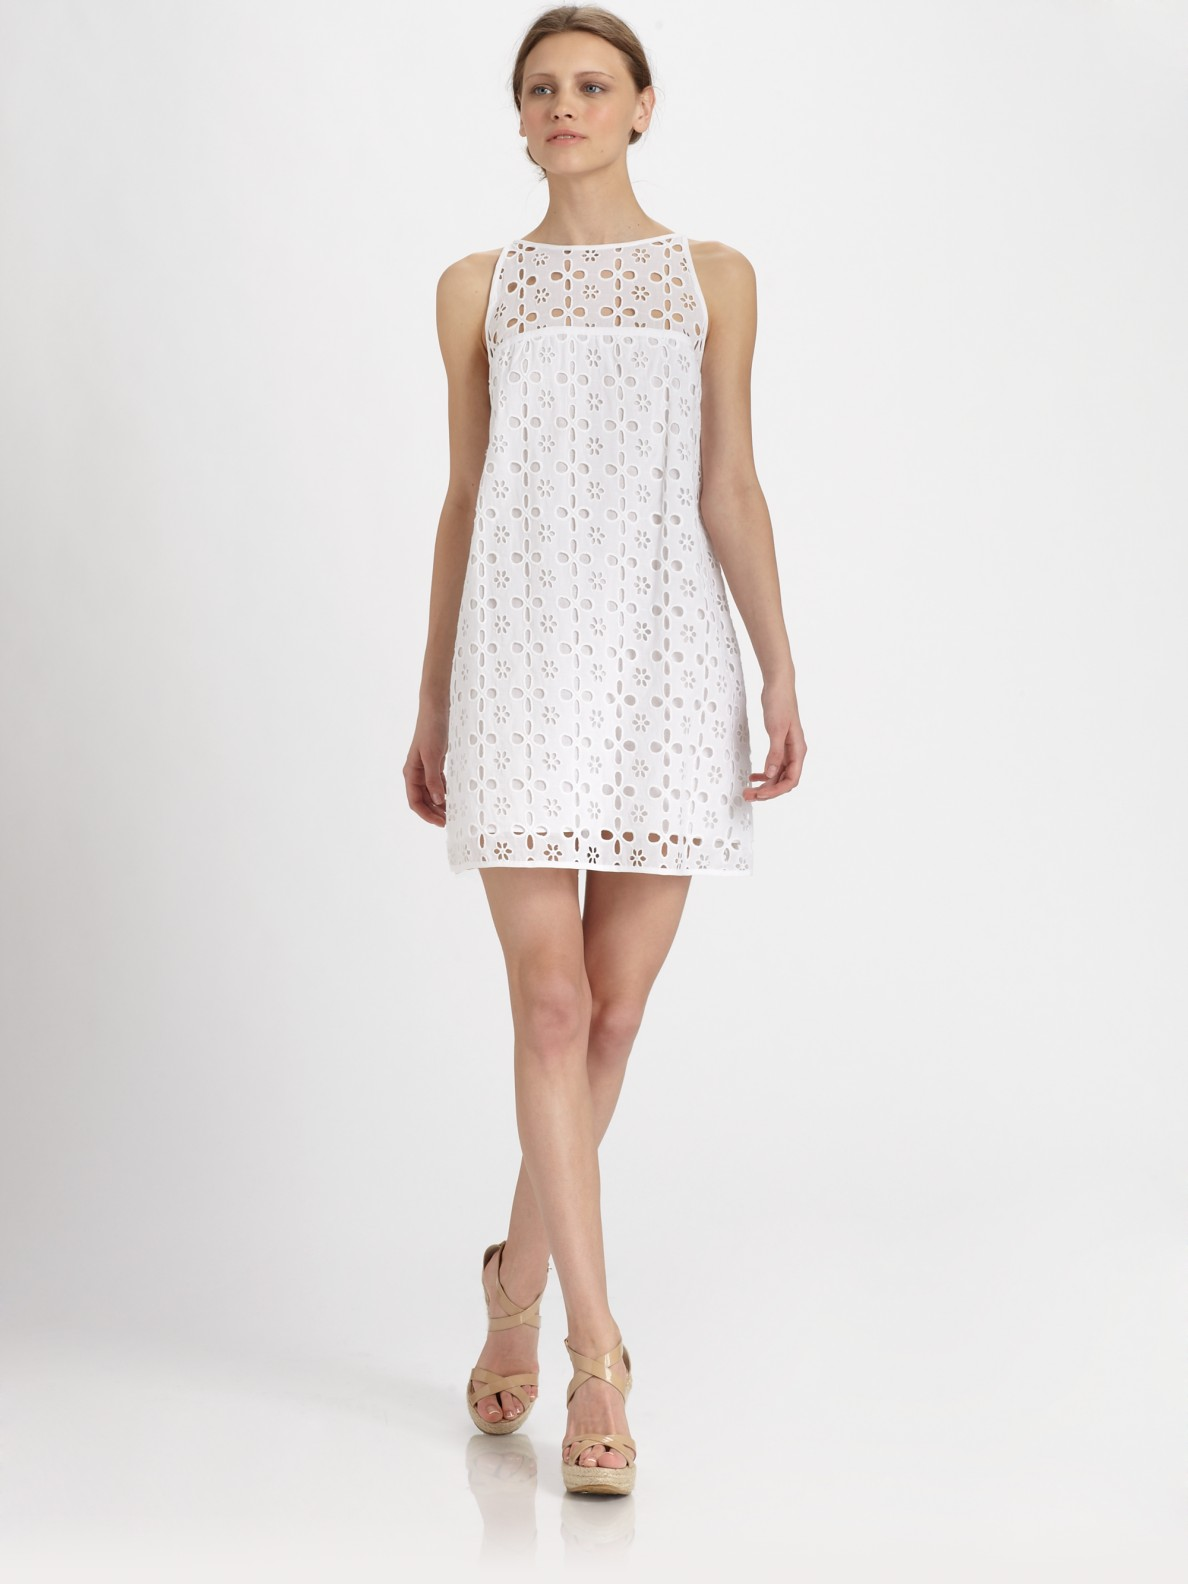 Milly Eyelet Shift Dress in White | Lyst